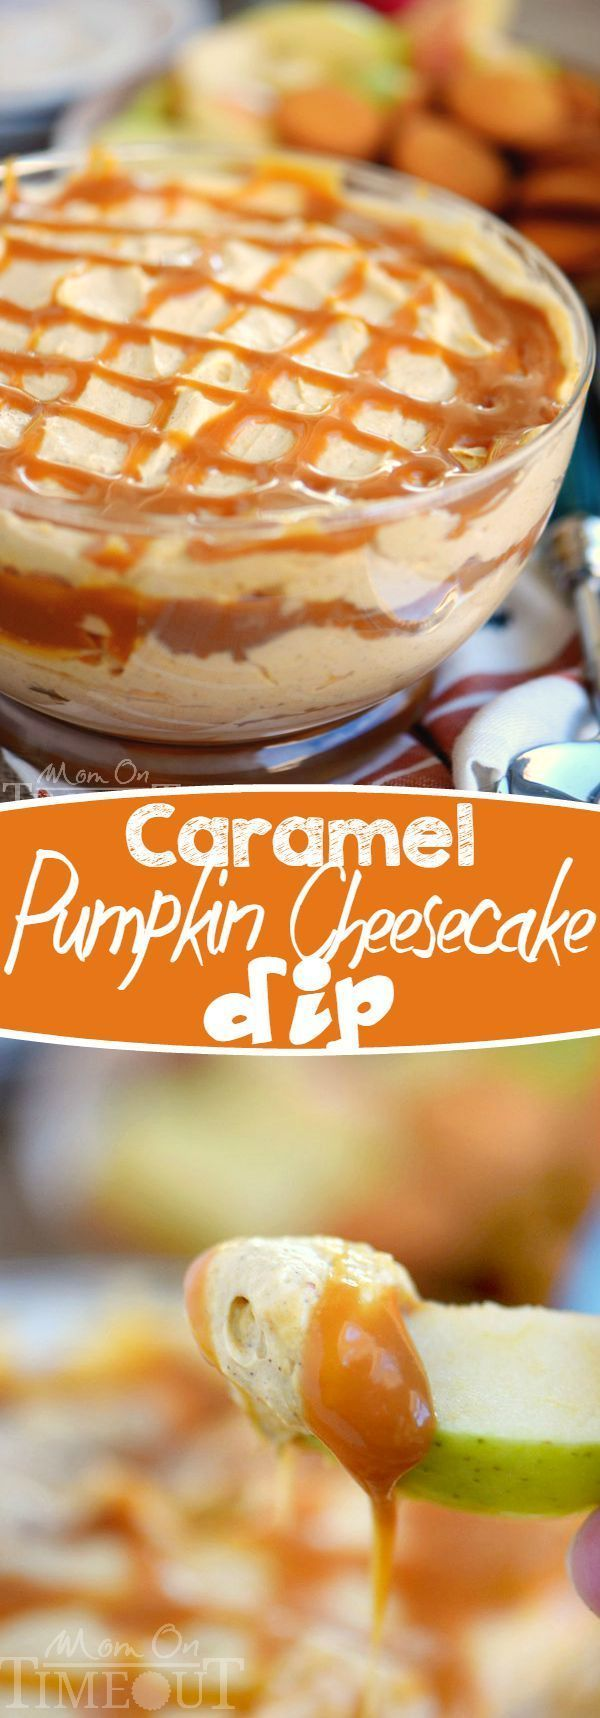 This easy to make, over the top Caramel Pumpkin Cheesecake Dip will have everyone